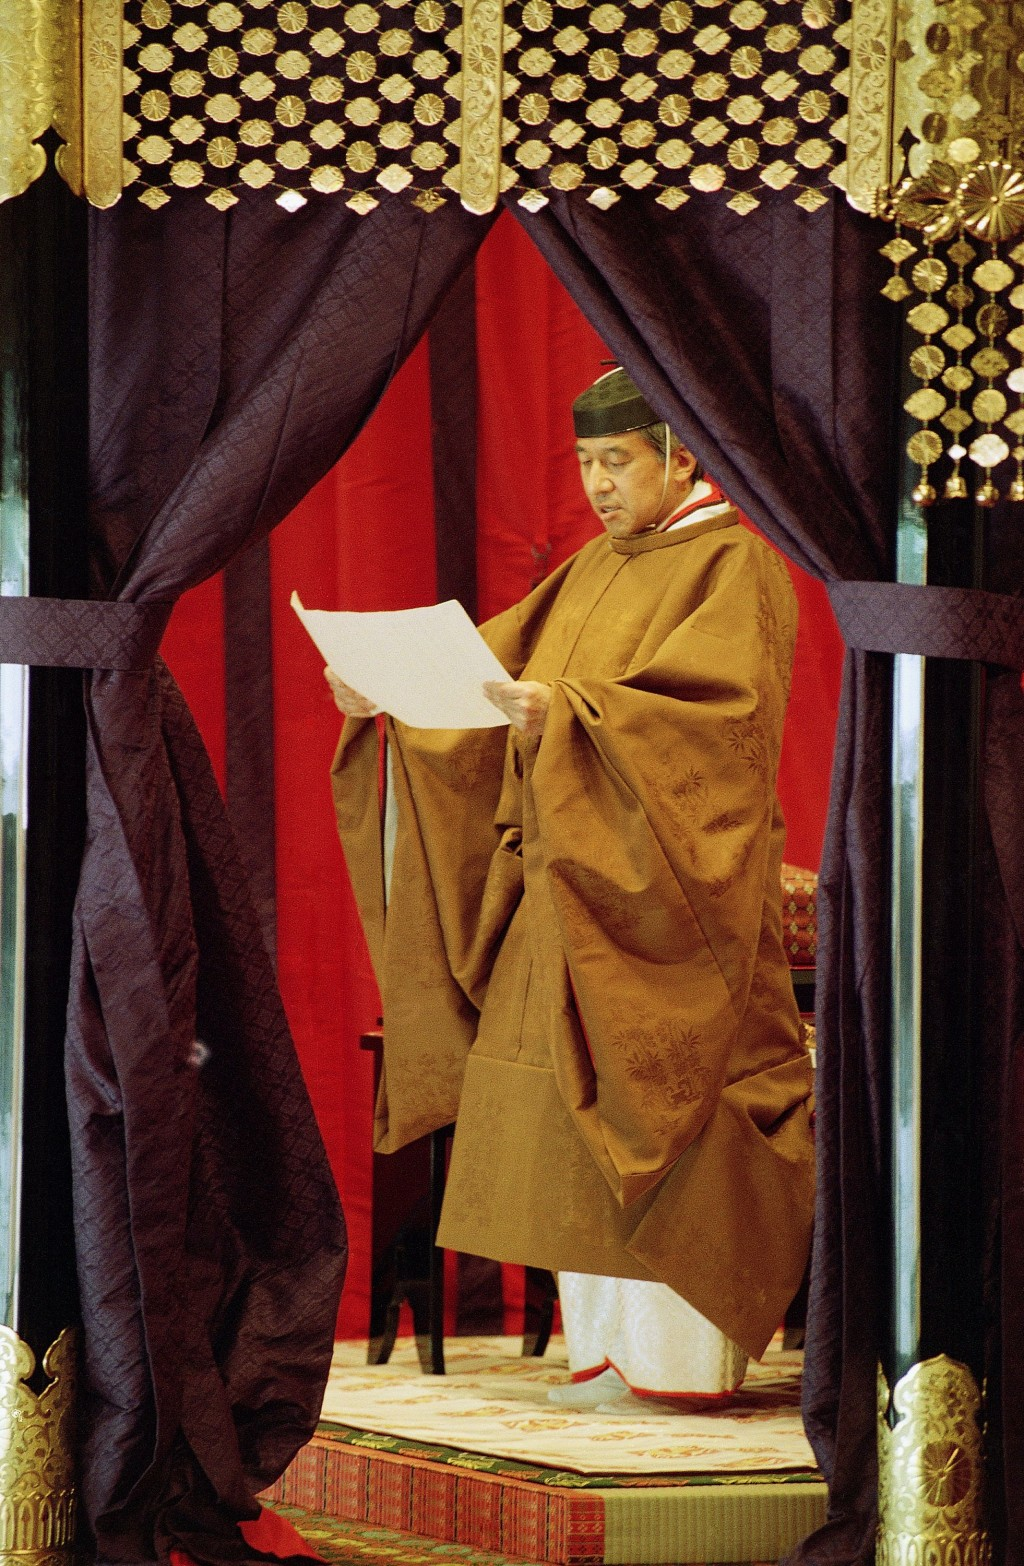 FILE - In this Nov. 12, 1990, file photo, then Japan's Emperor Akihito reads an address as he formally ascends to the Chrysanthemum Throne at the impe...